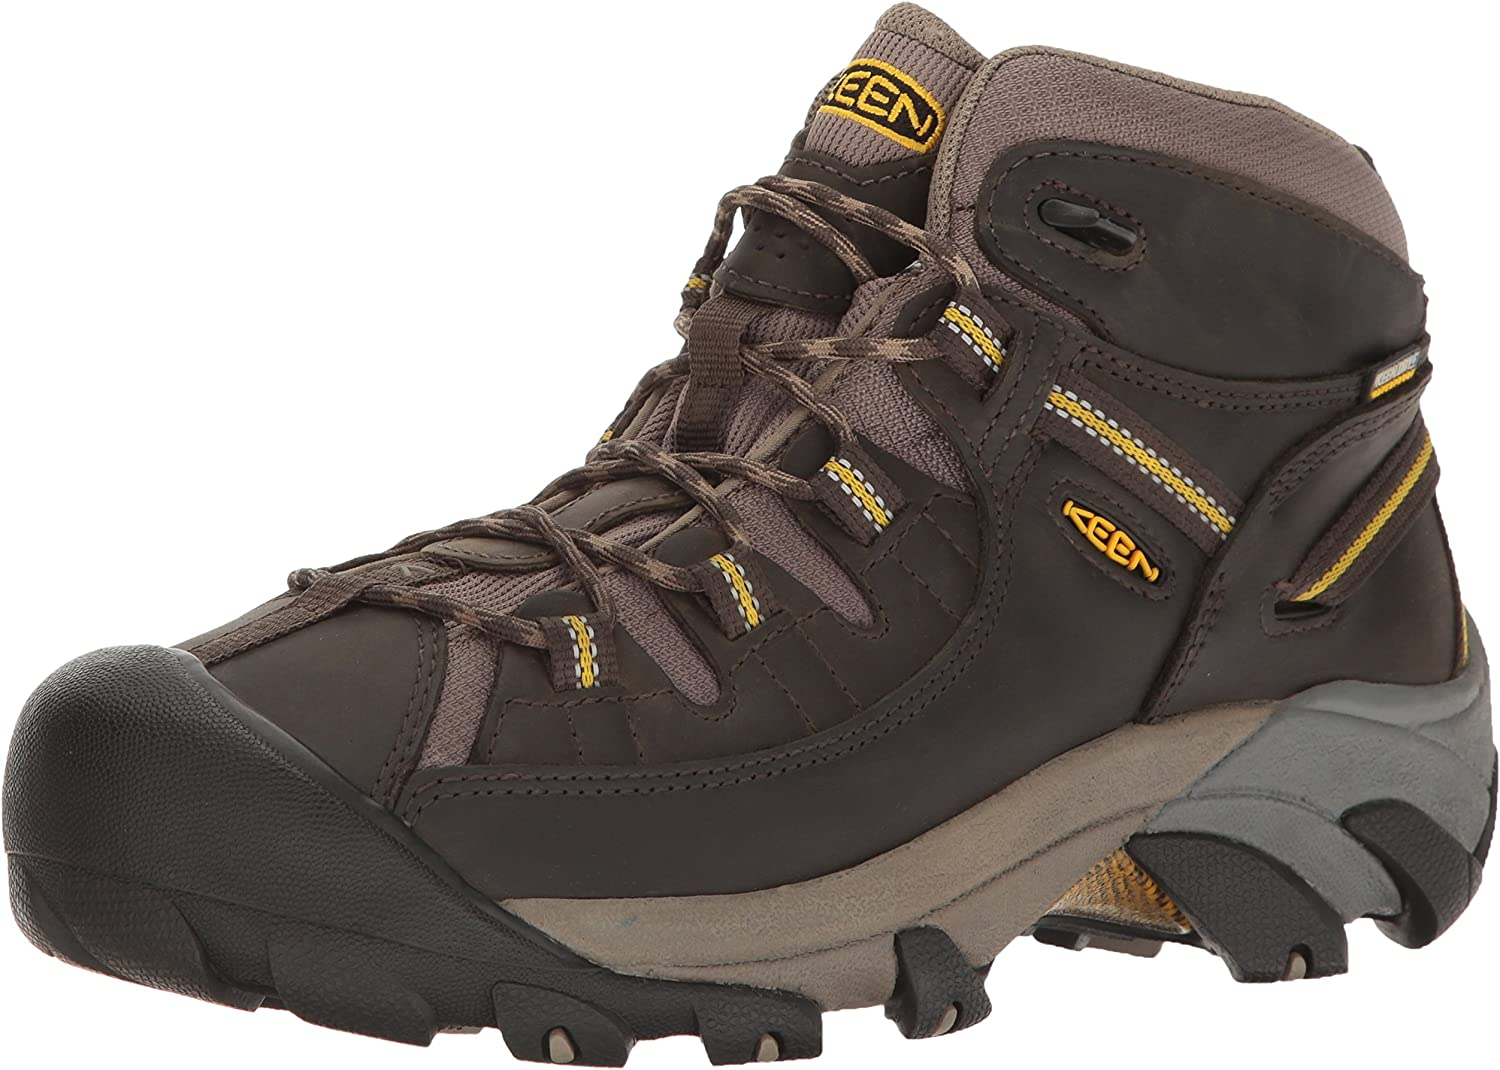 KEEN Men's Targhee II Mid Wide Hiking shoes